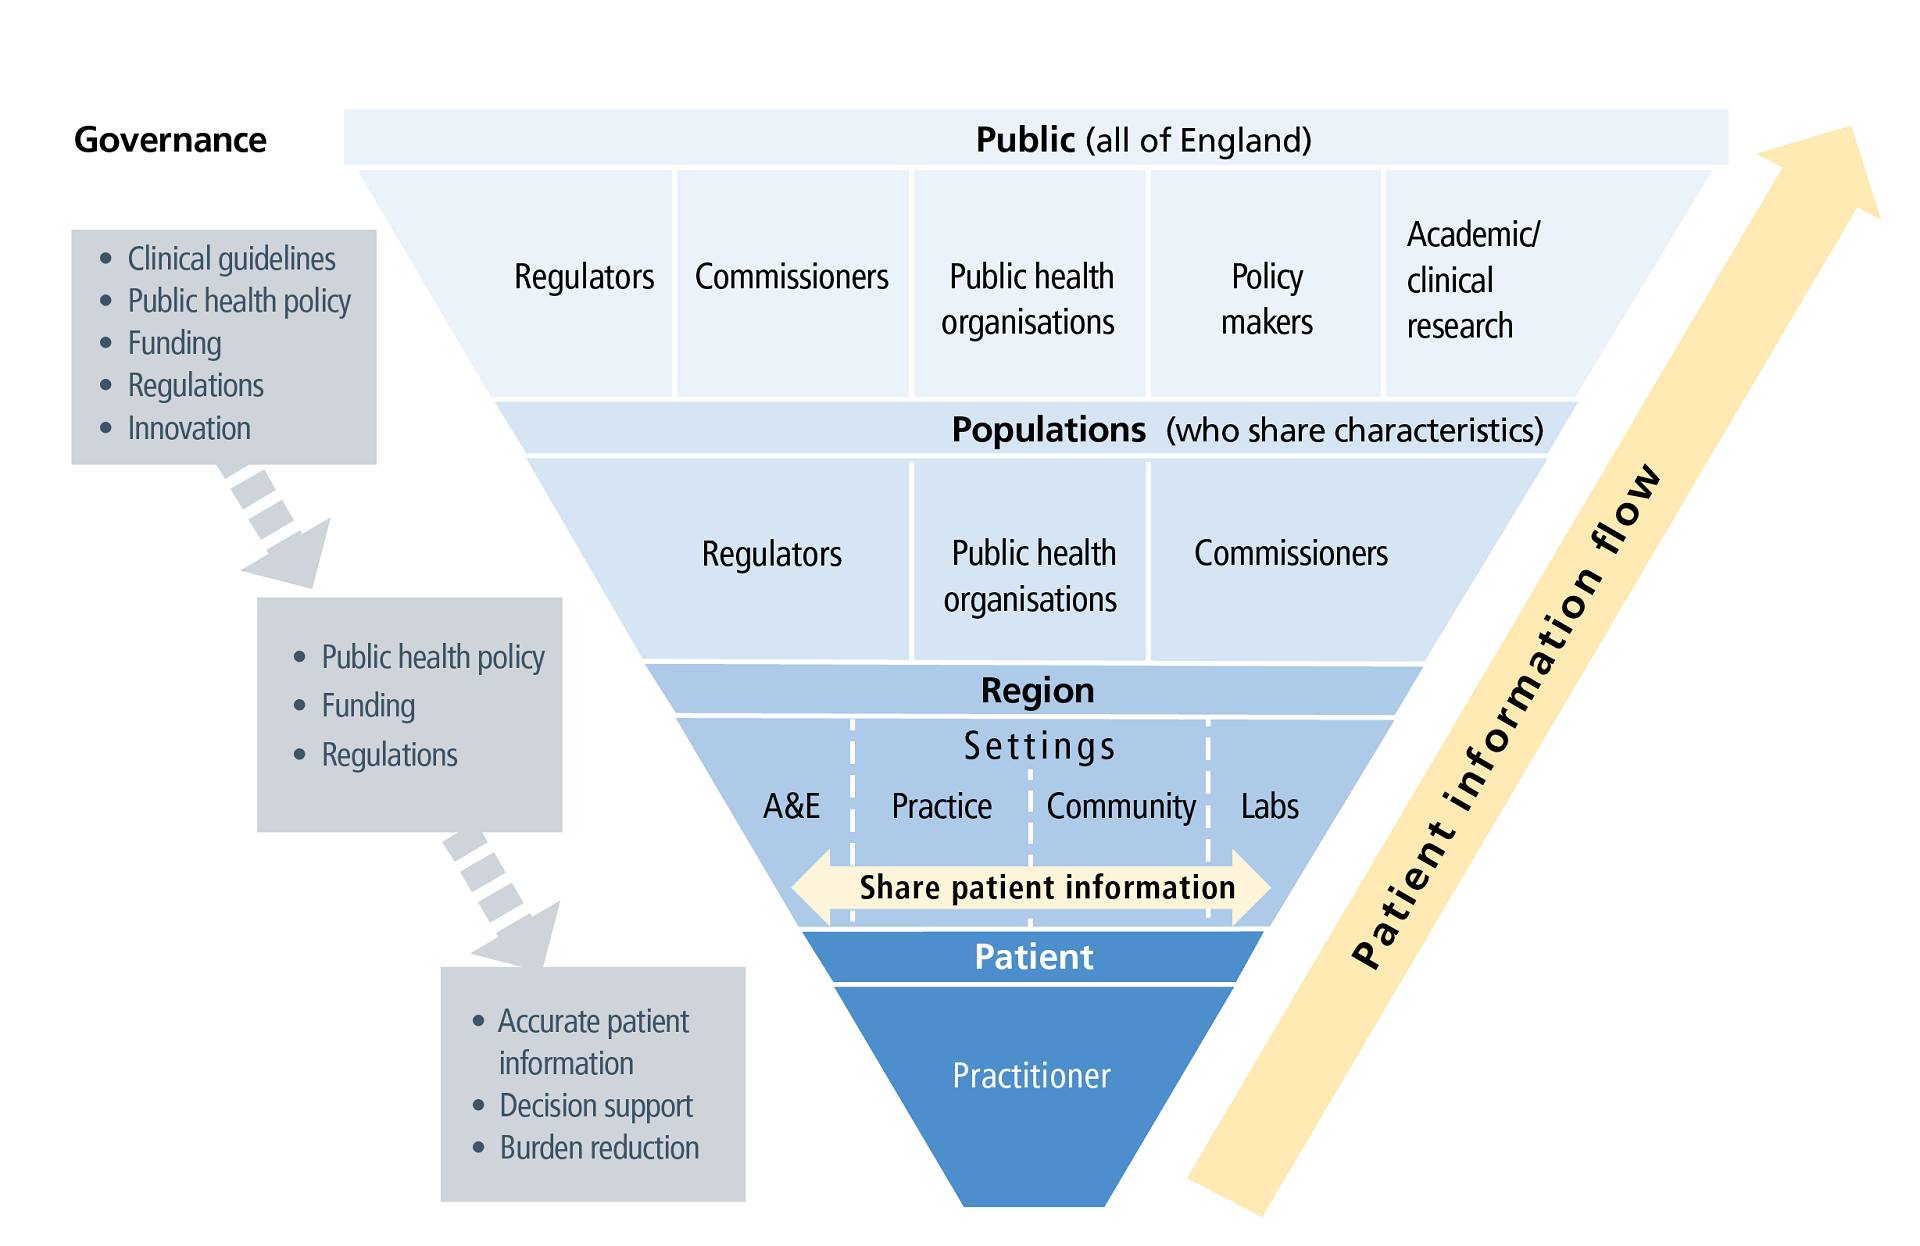 Patient information flow in the health and care system